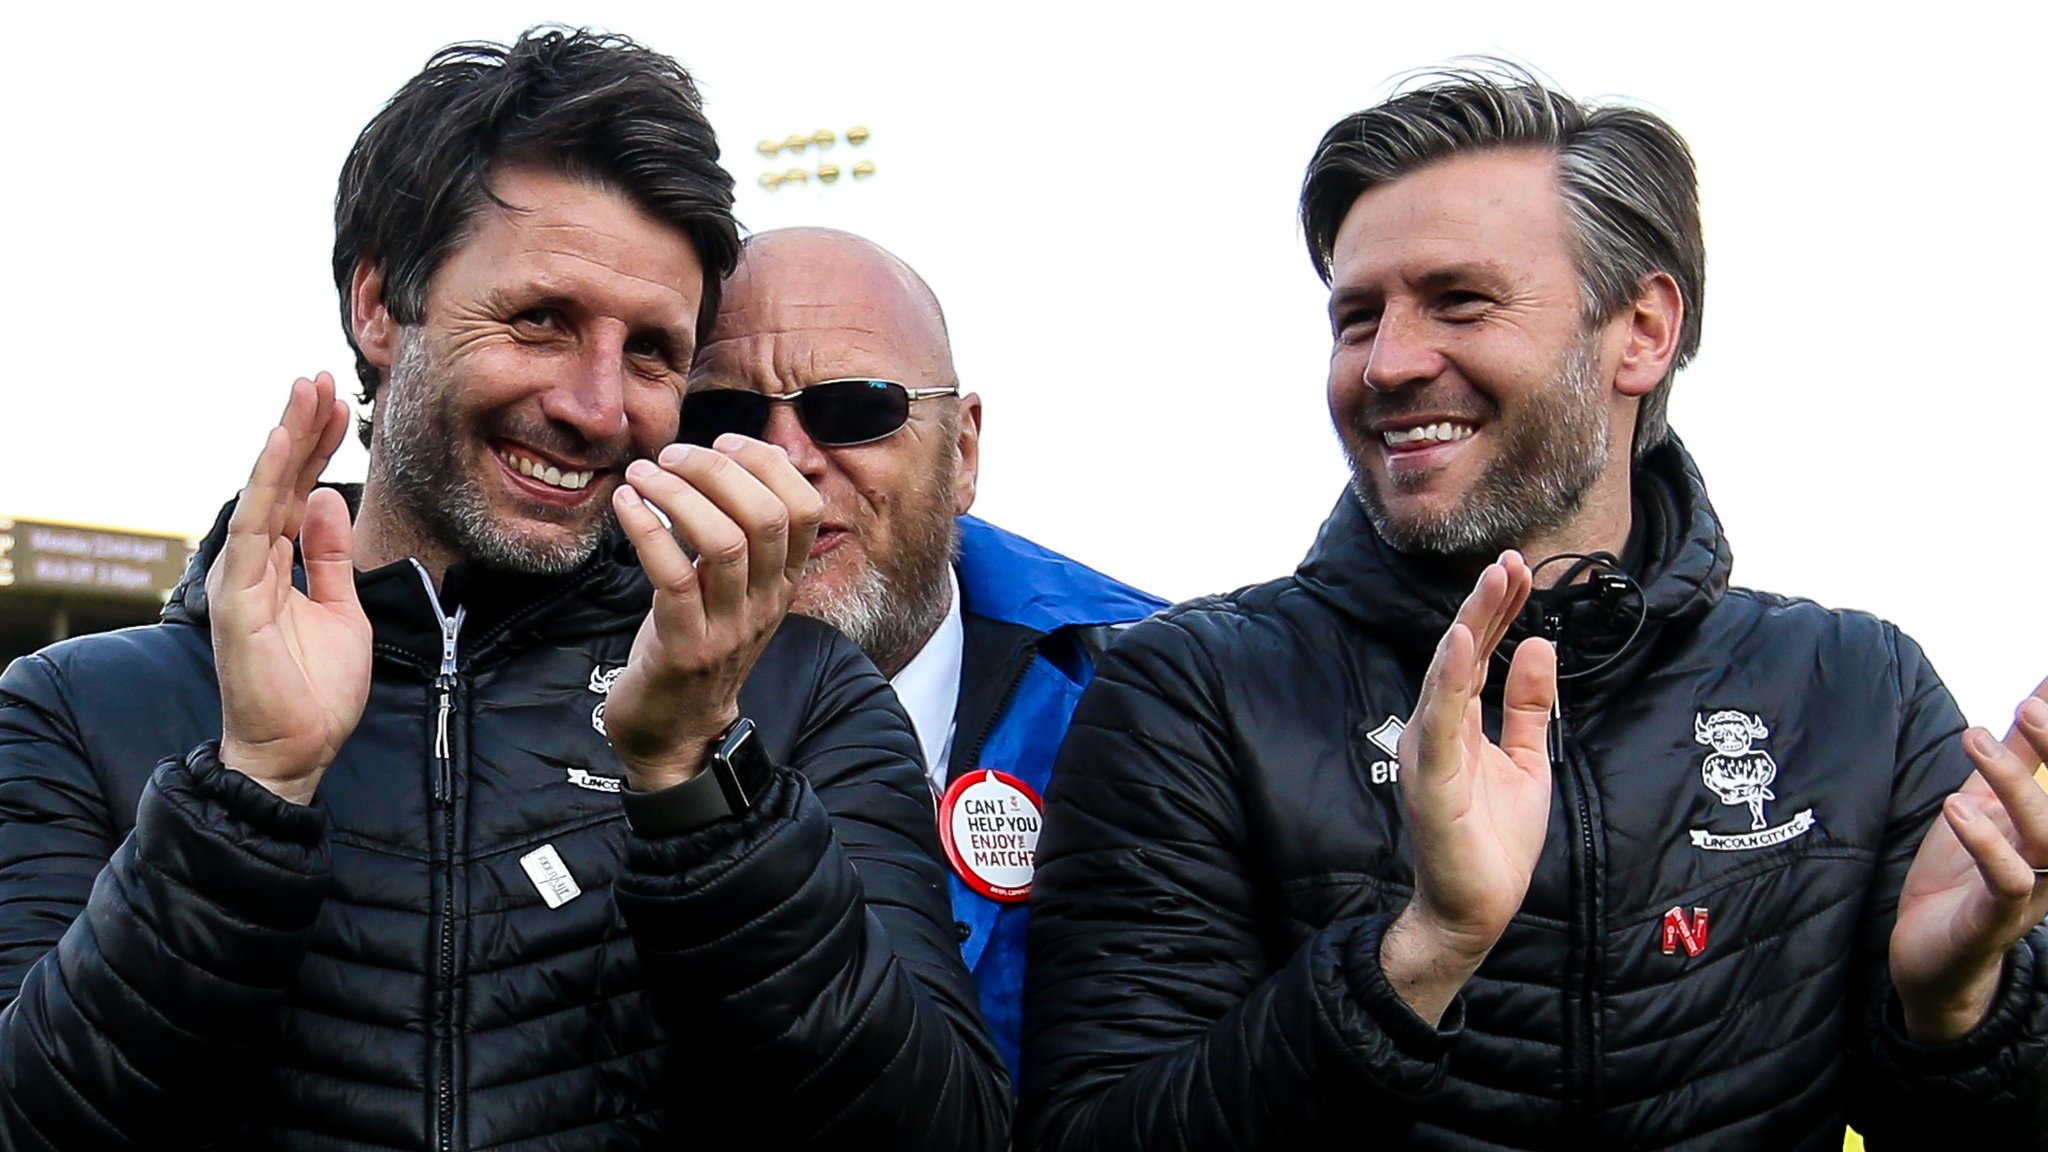 Lincoln 1-1 Cheltenham: Cowley delighted with promotion